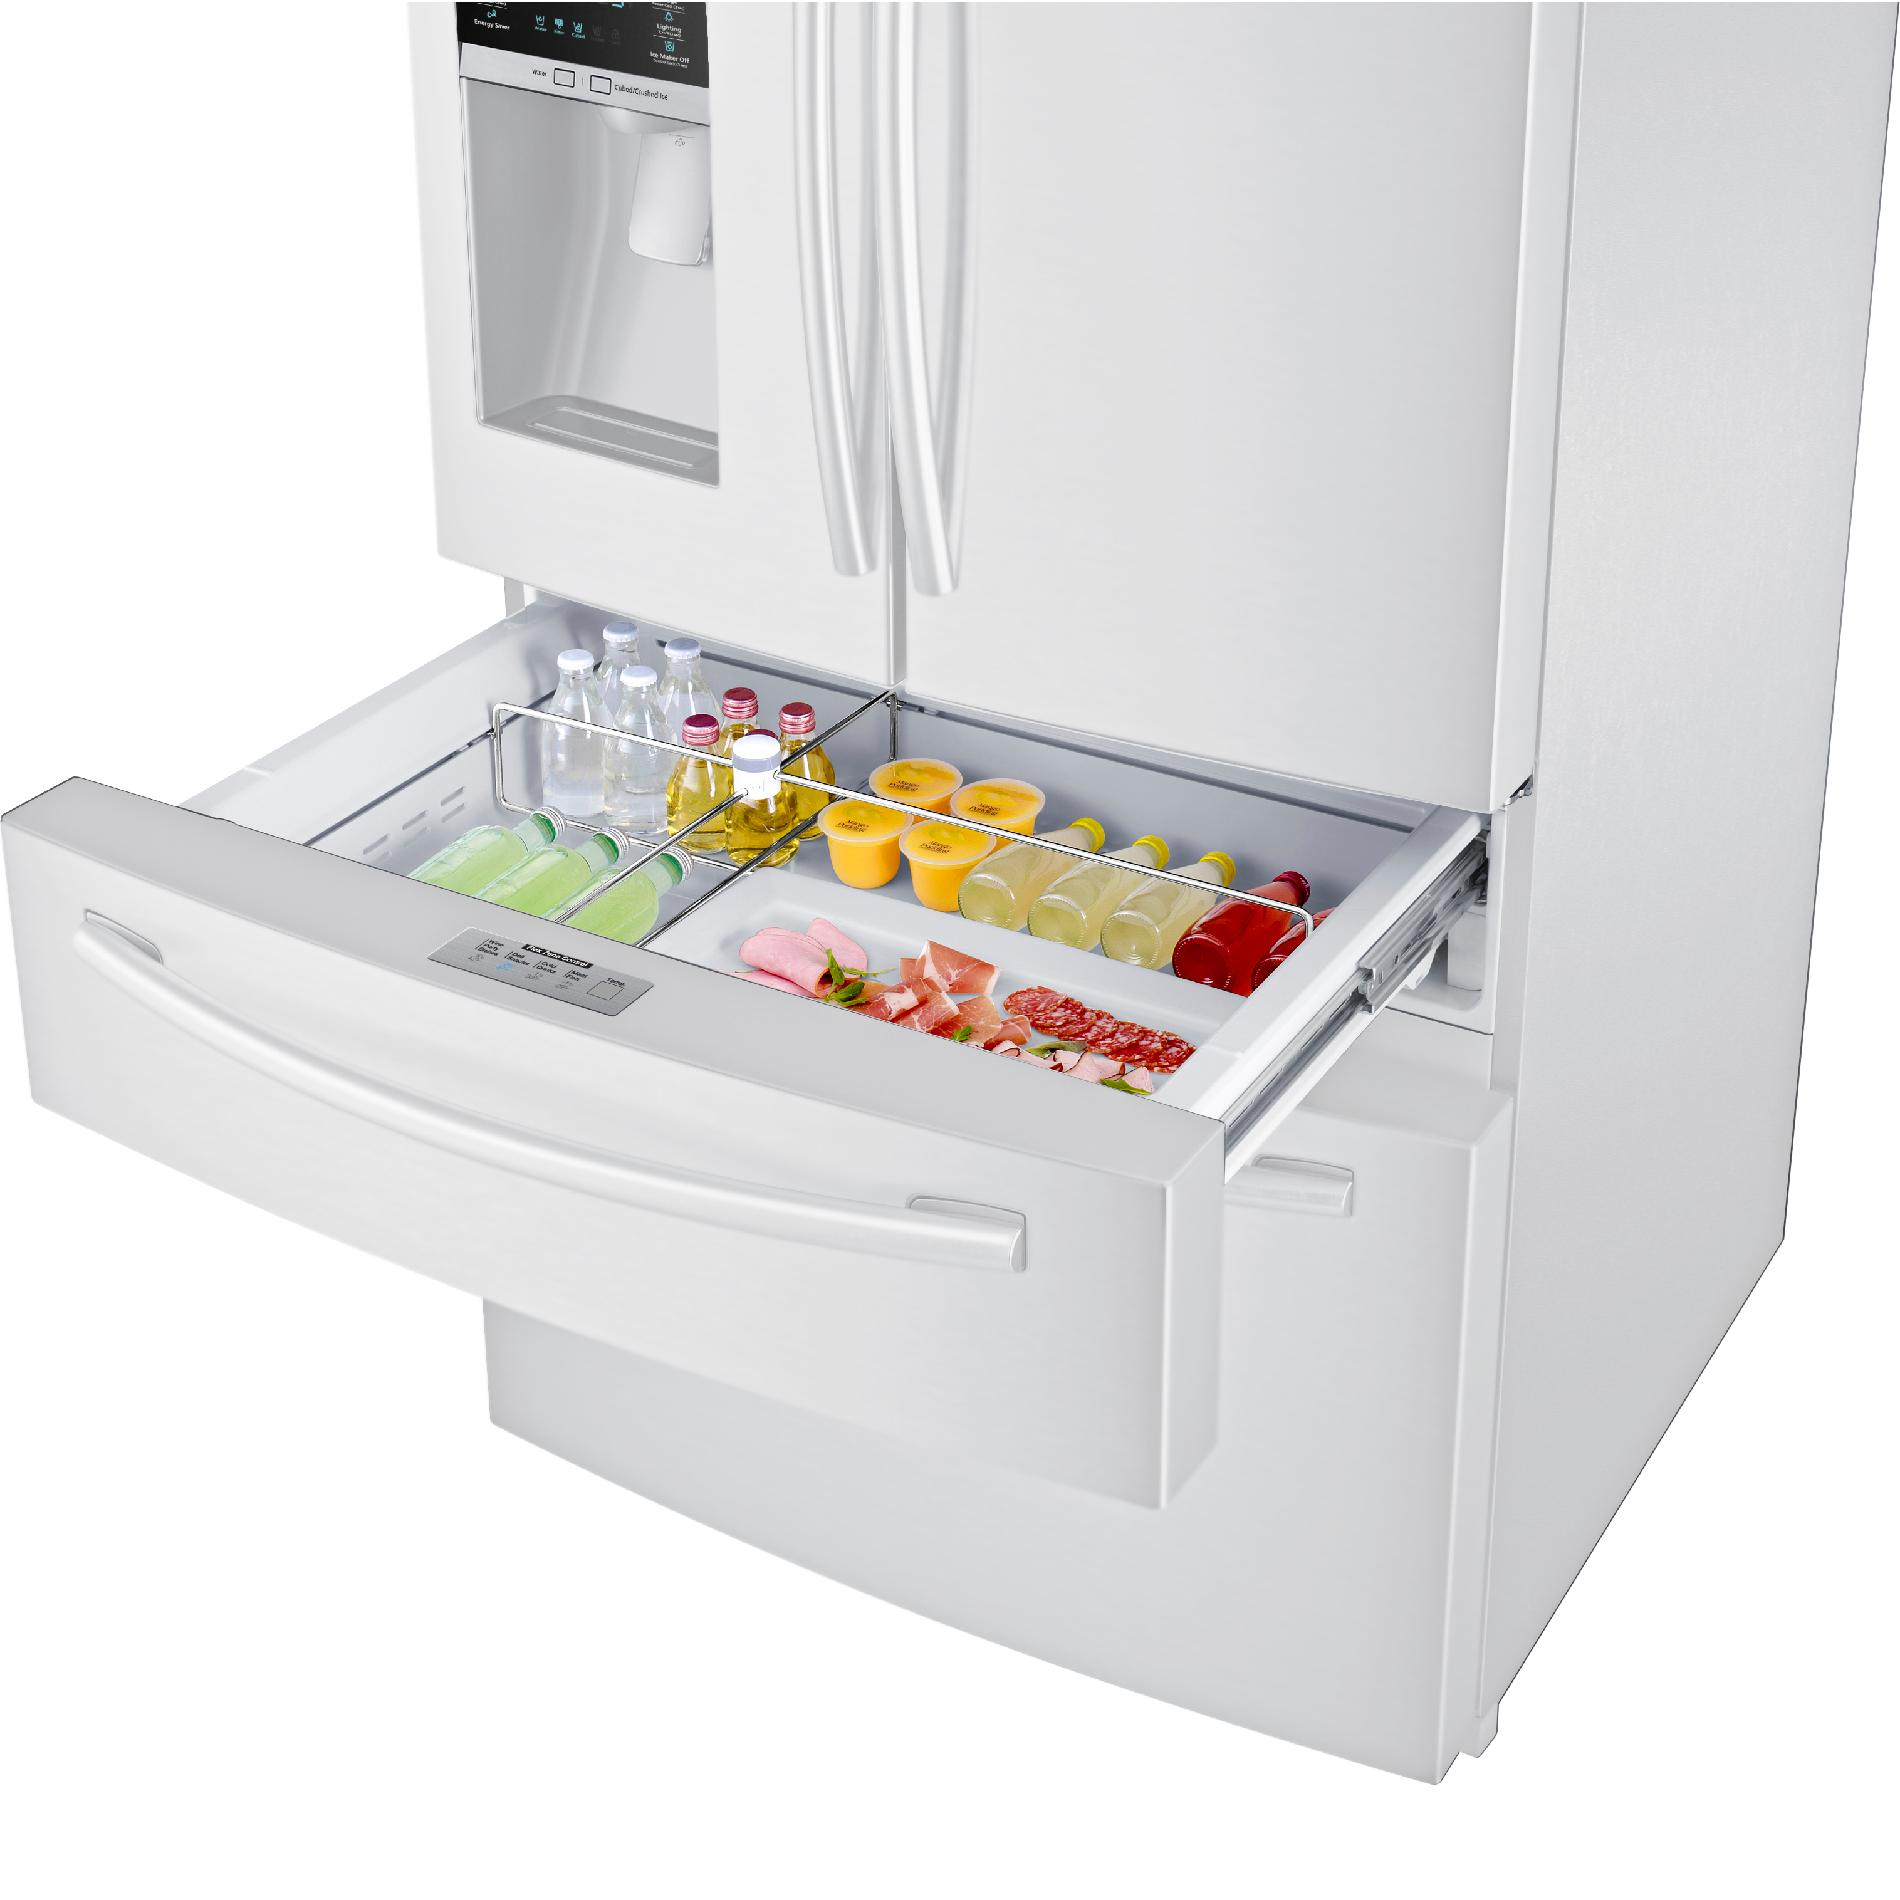 Samsung RF28HMEDBWW/AA 28 cu. ft. 4-Door French Door Refrigerator - White